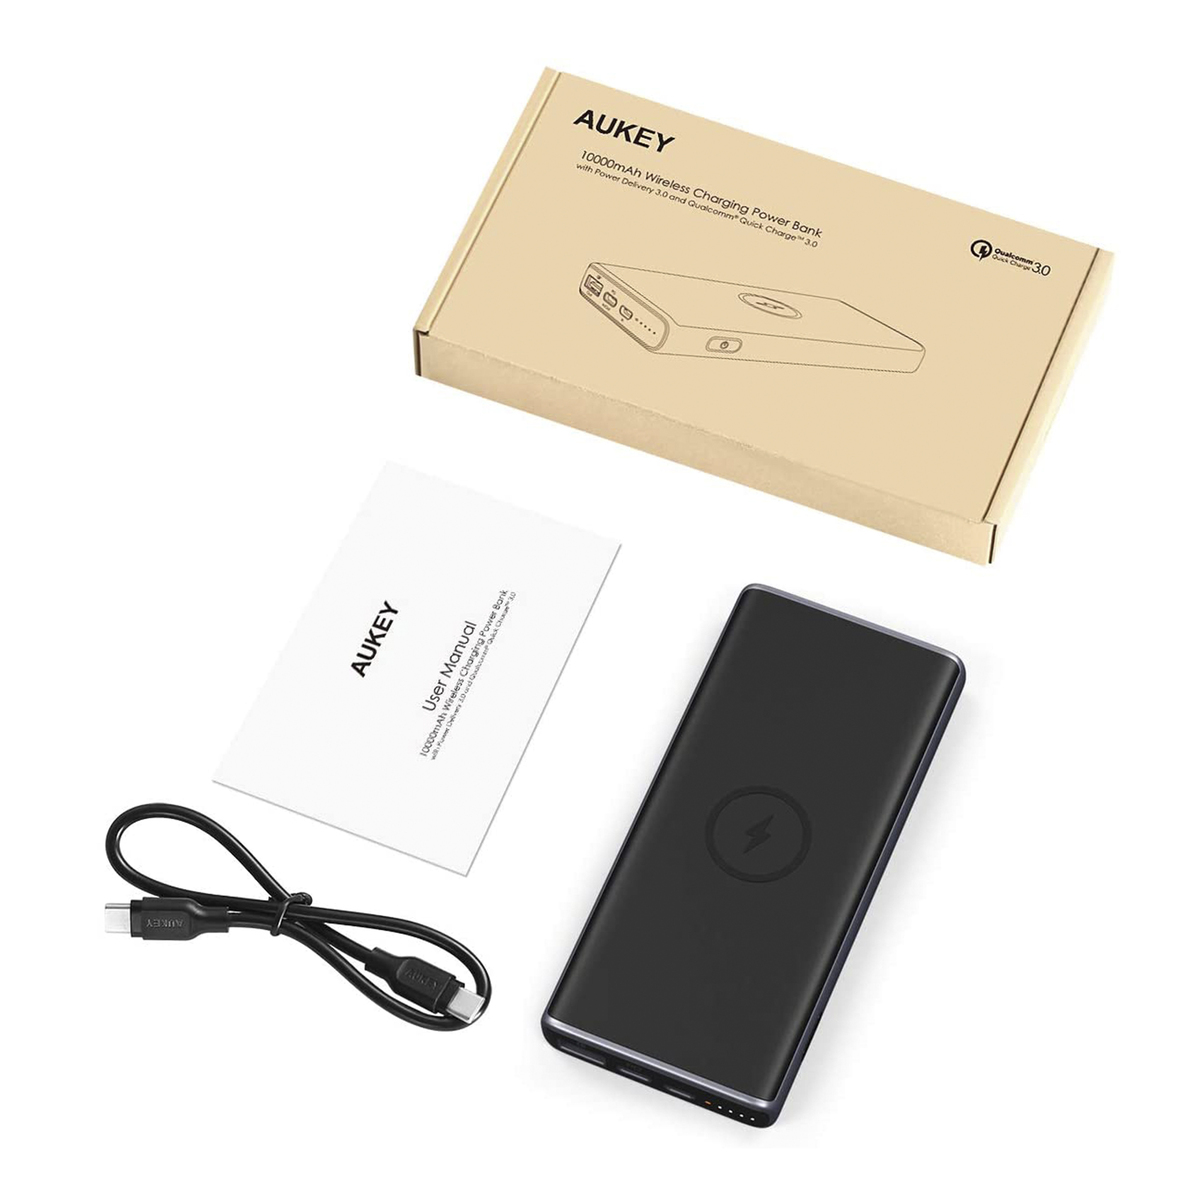 Aukey PB-Y32 18W PD QC 3.0 10000mAh Power Bank with Wireless Charging